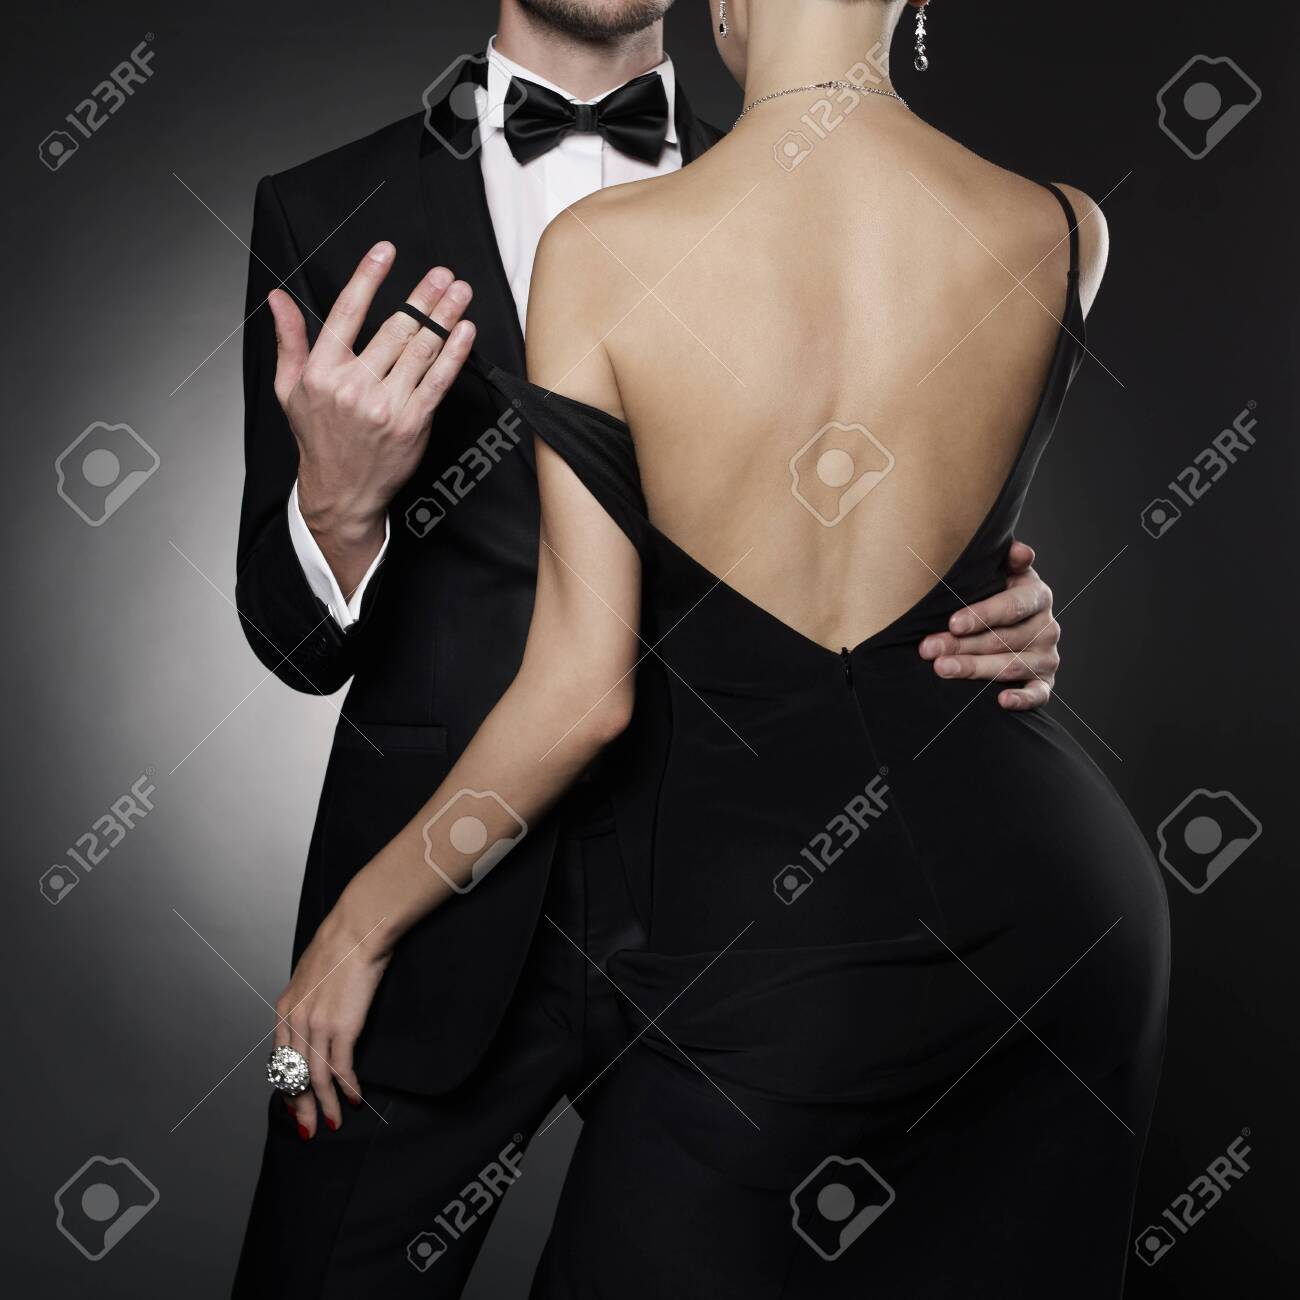 Conceptual photo of elegant couple in the evening suit and dress. dancing lovers pose in photography studio. - 145930784